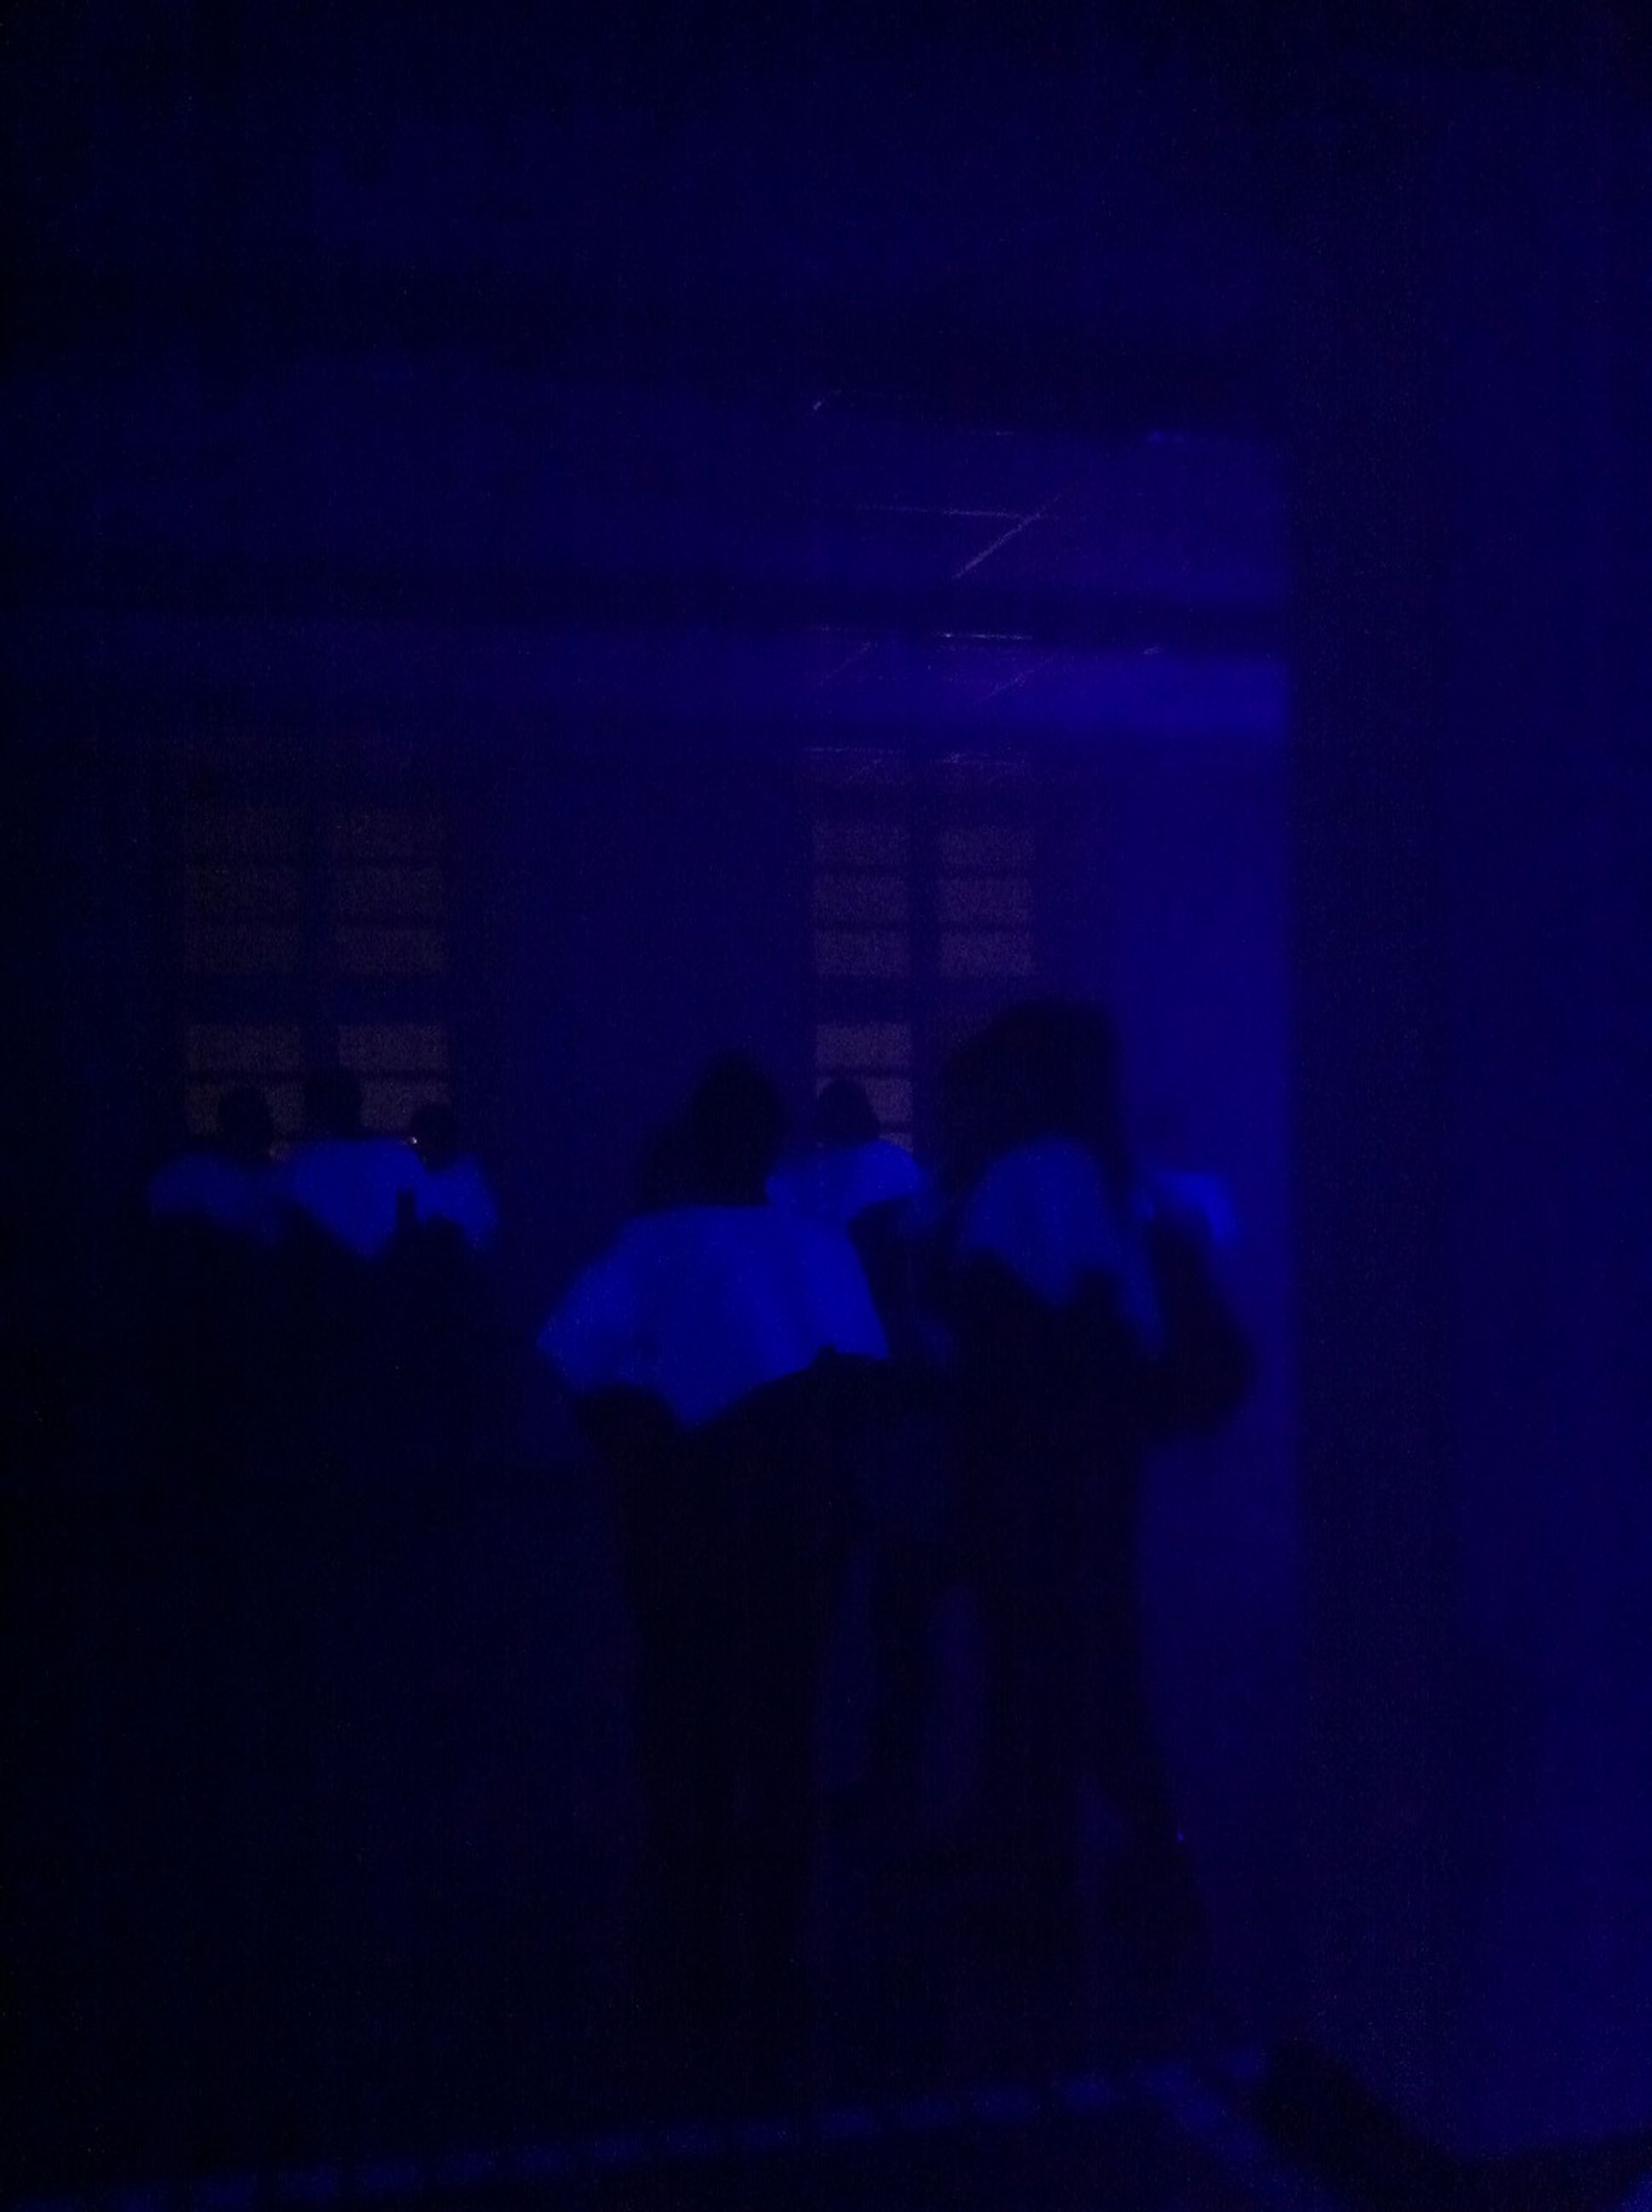 lifestyles, leisure activity, men, illuminated, silhouette, night, person, blue, indoors, water, rear view, togetherness, standing, architecture, enjoyment, unrecognizable person, built structure